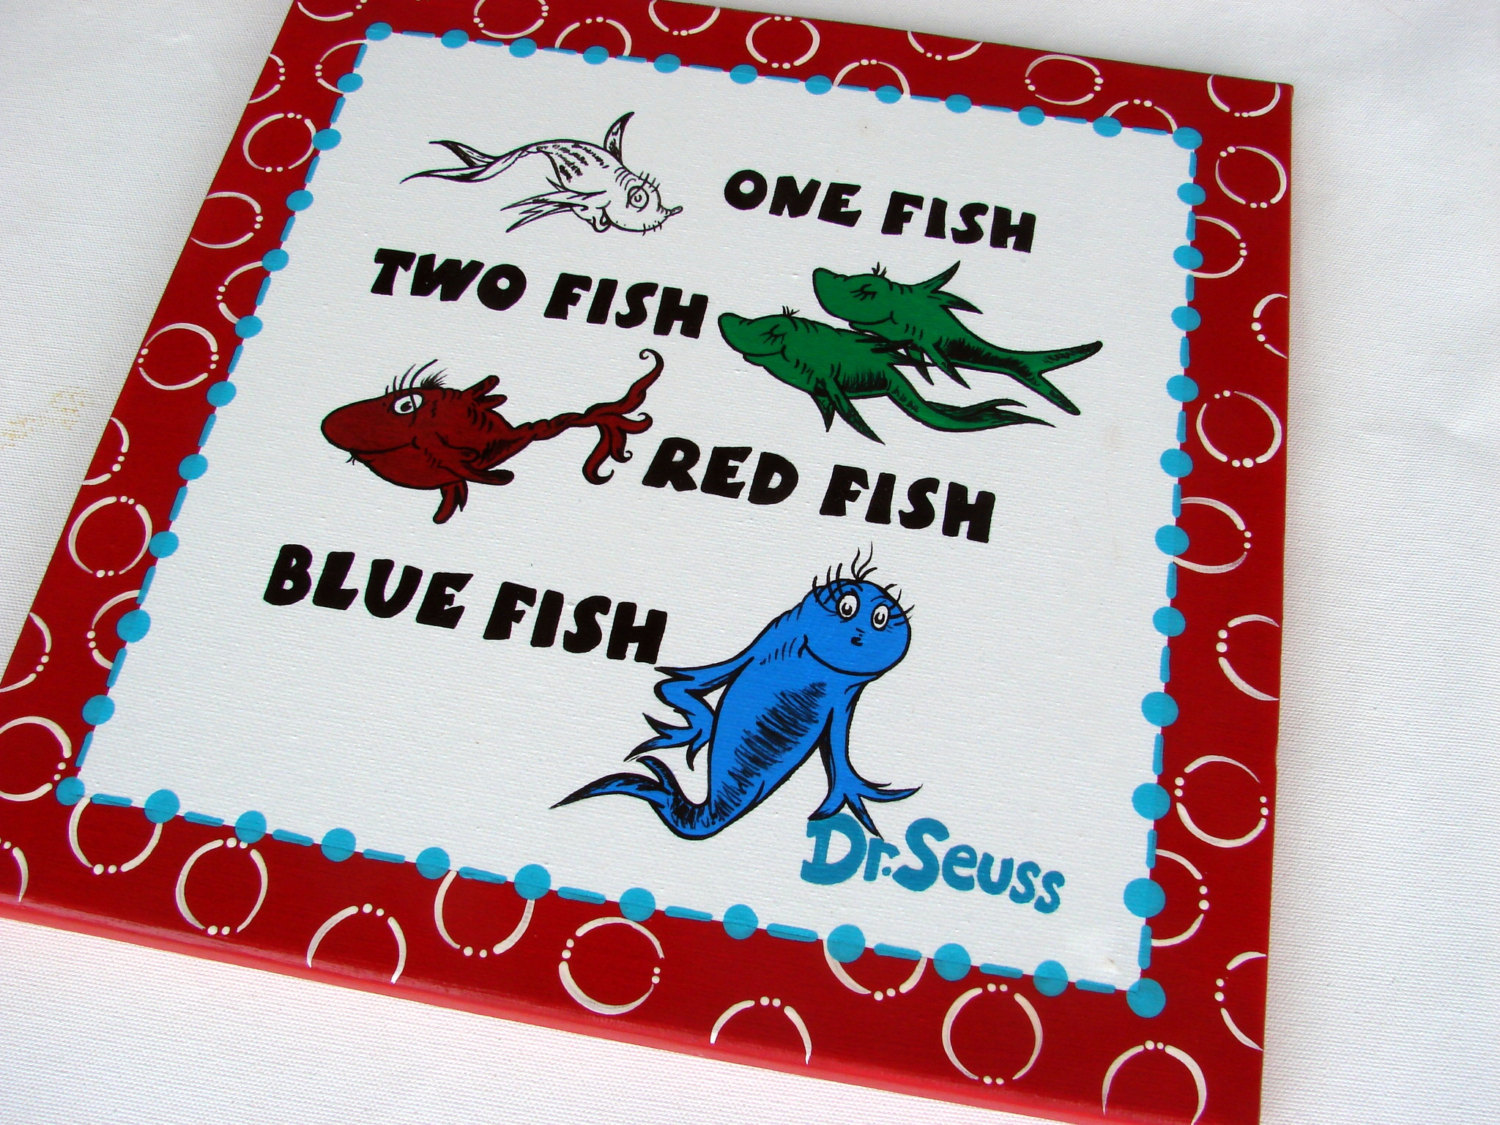 one fish two fish red fish blue fish hand painted dr. Black Bedroom Furniture Sets. Home Design Ideas